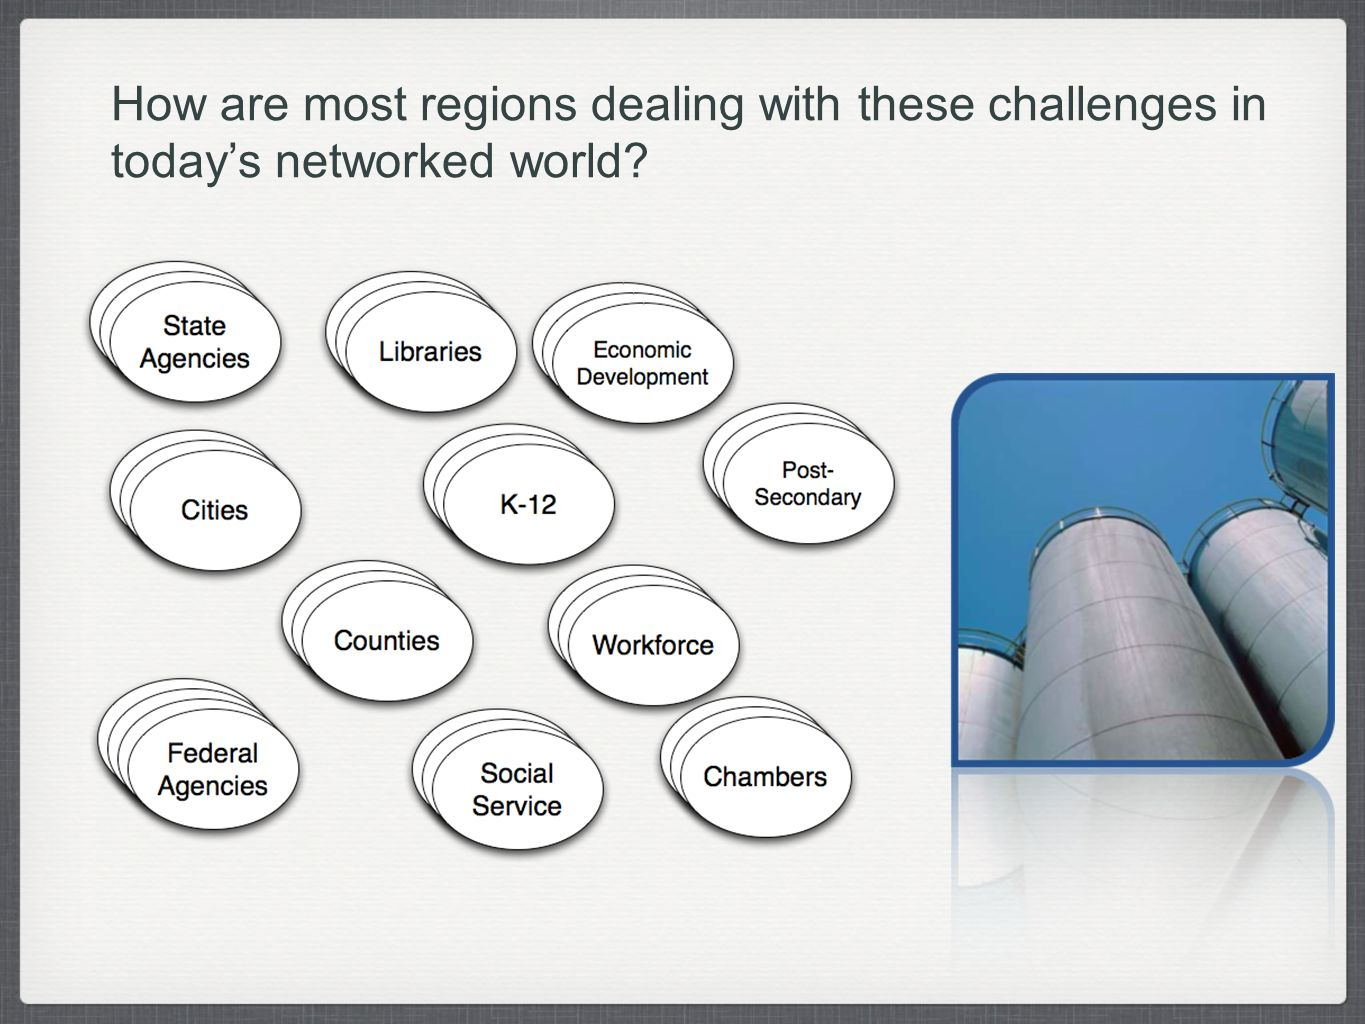 How are most regions dealing with these challenges in todays networked world